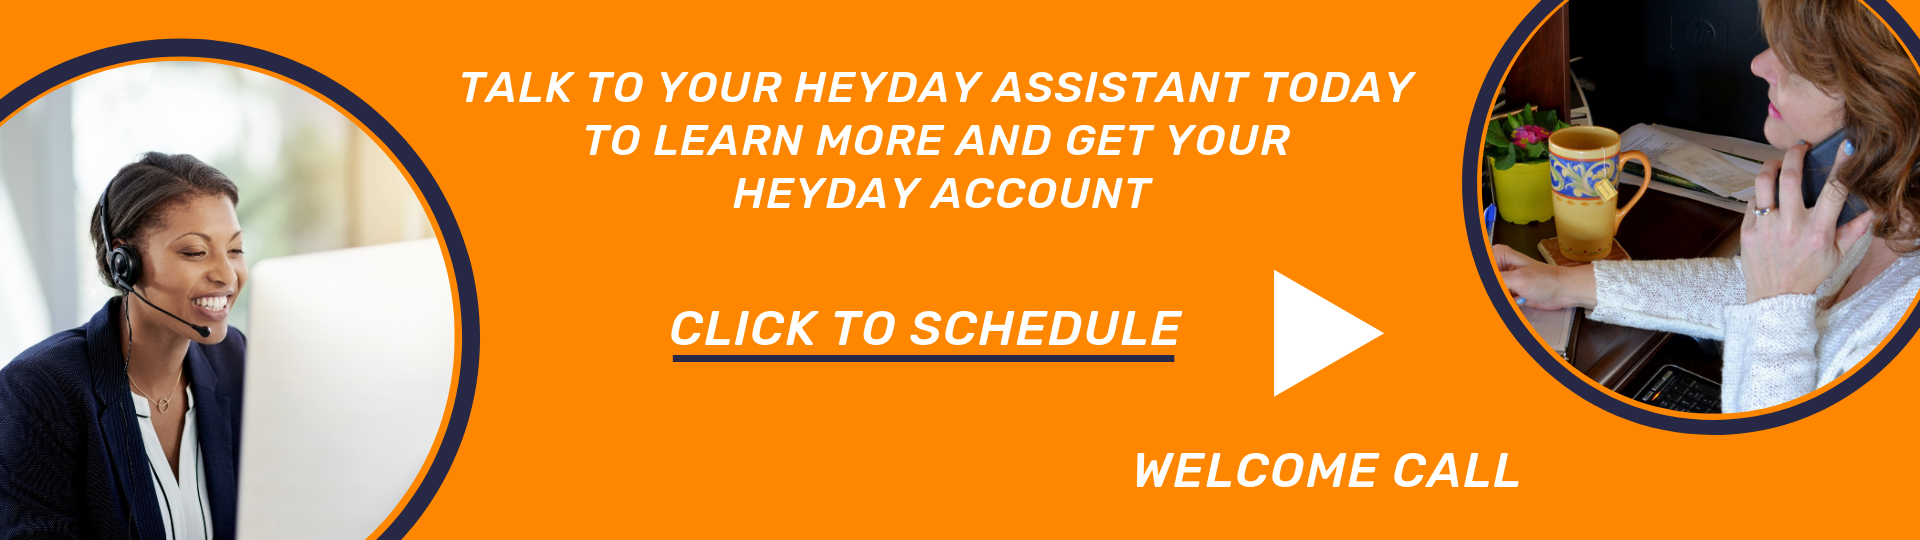 Schedule your welcome call with a Heyday Assistant today